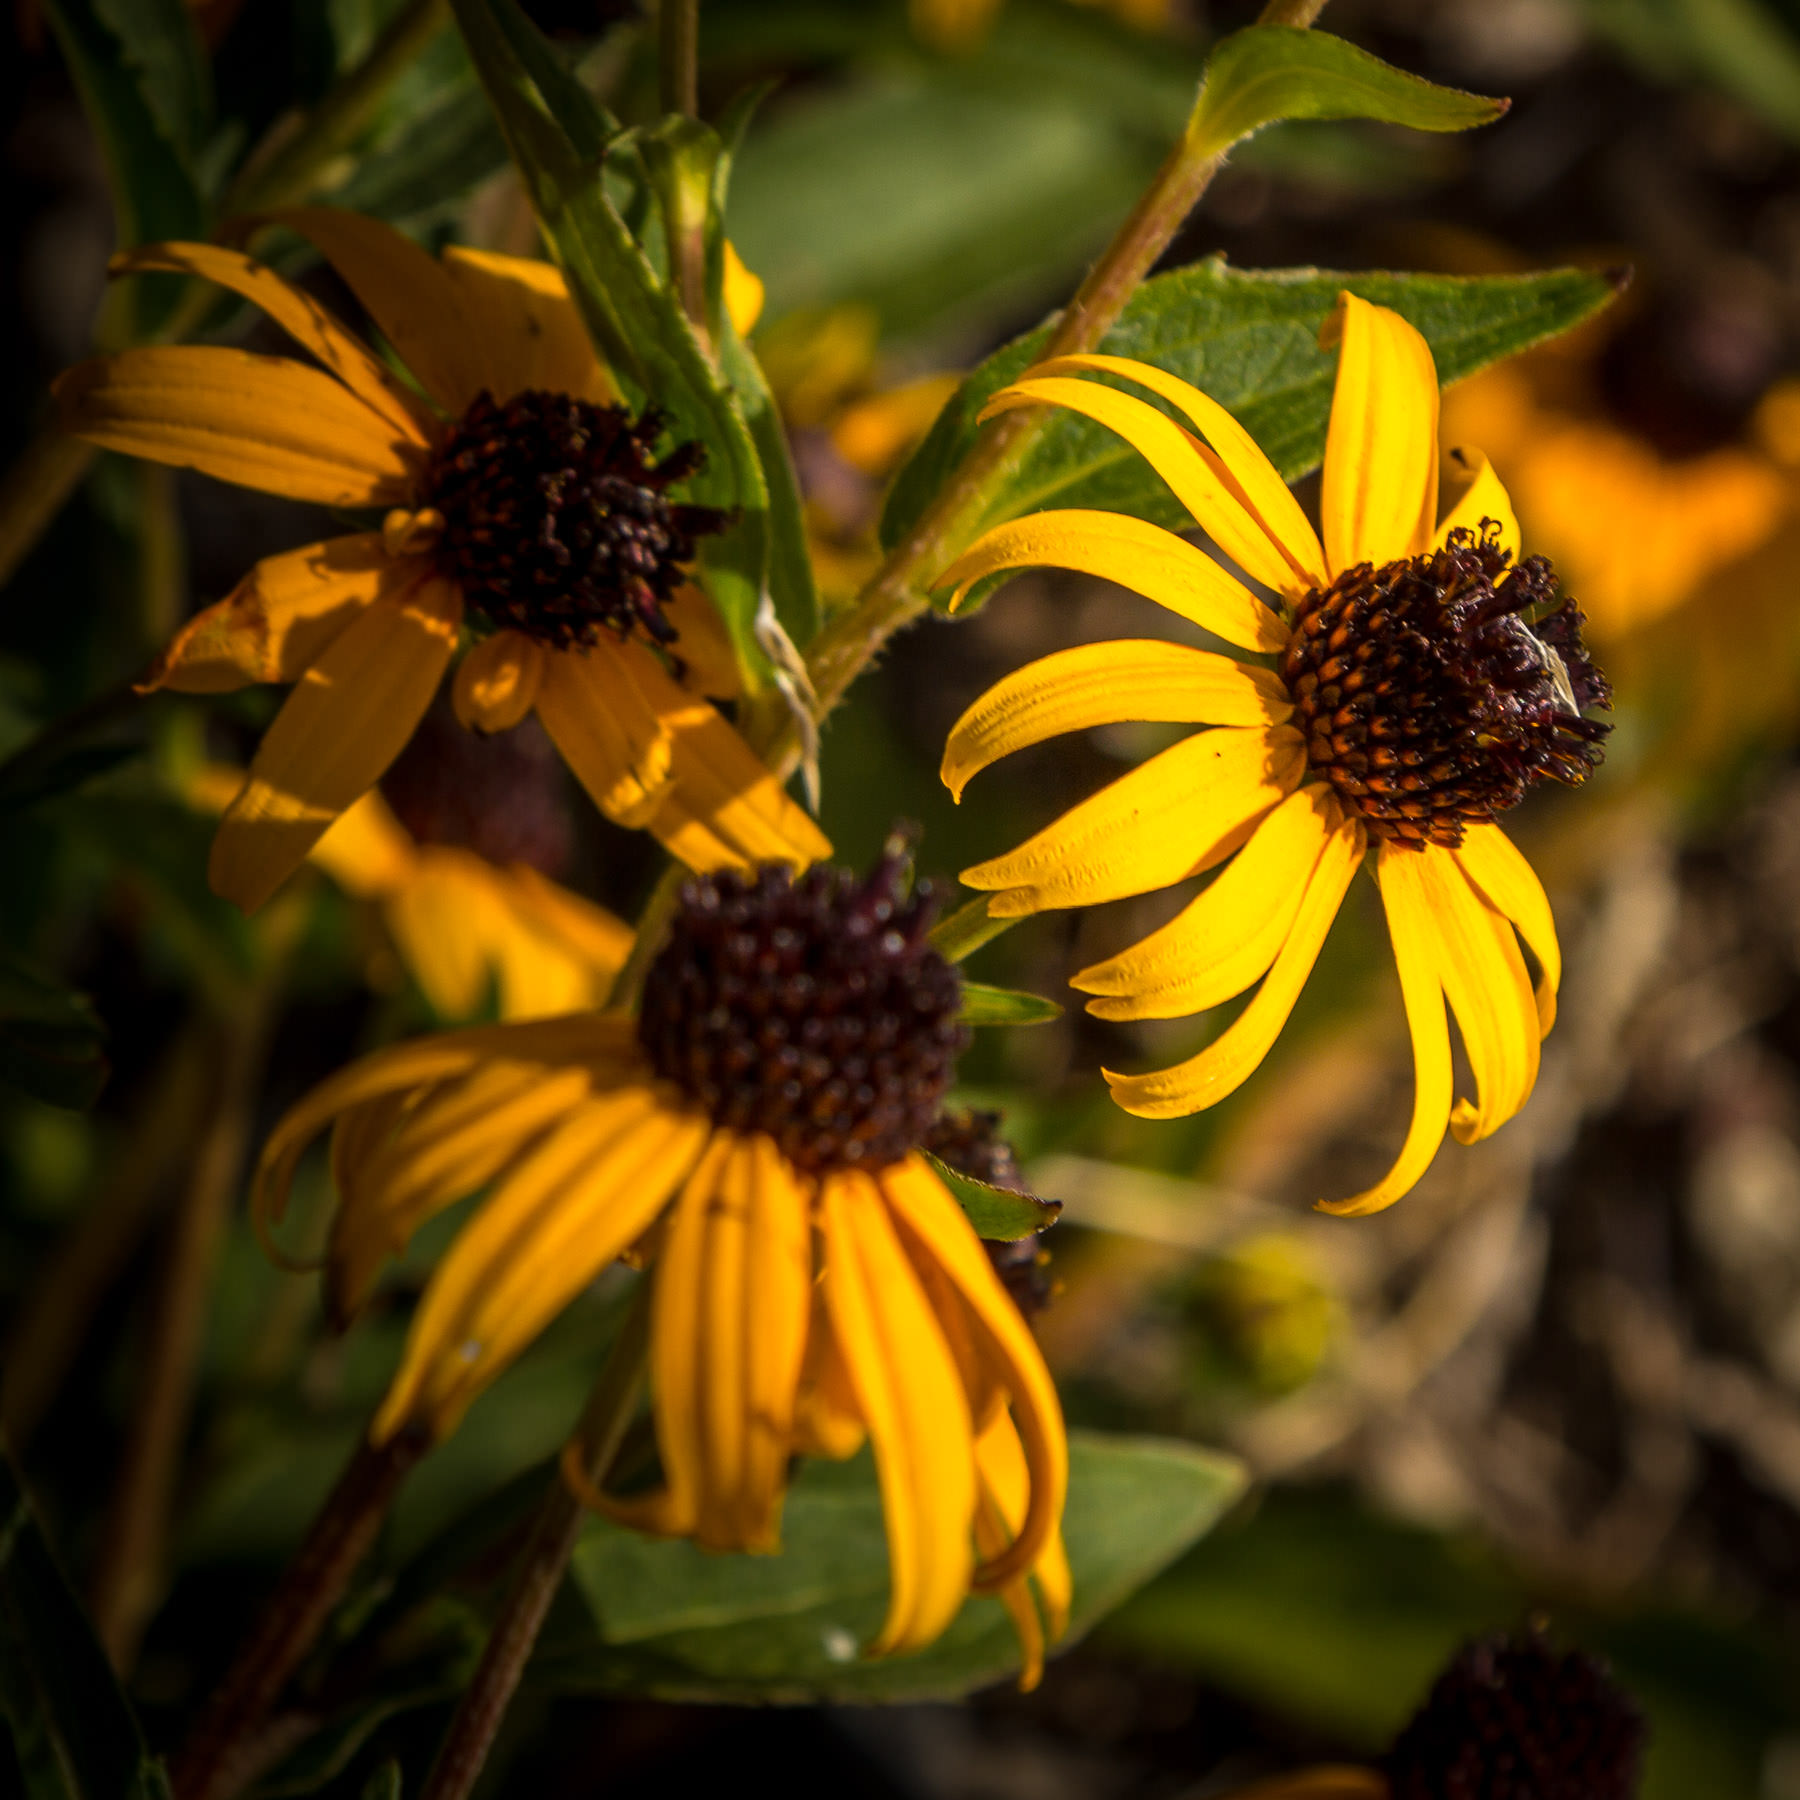 Three yellow daisies, also known as black-eyed susans, found at Dallas' Klyde Warren Park.